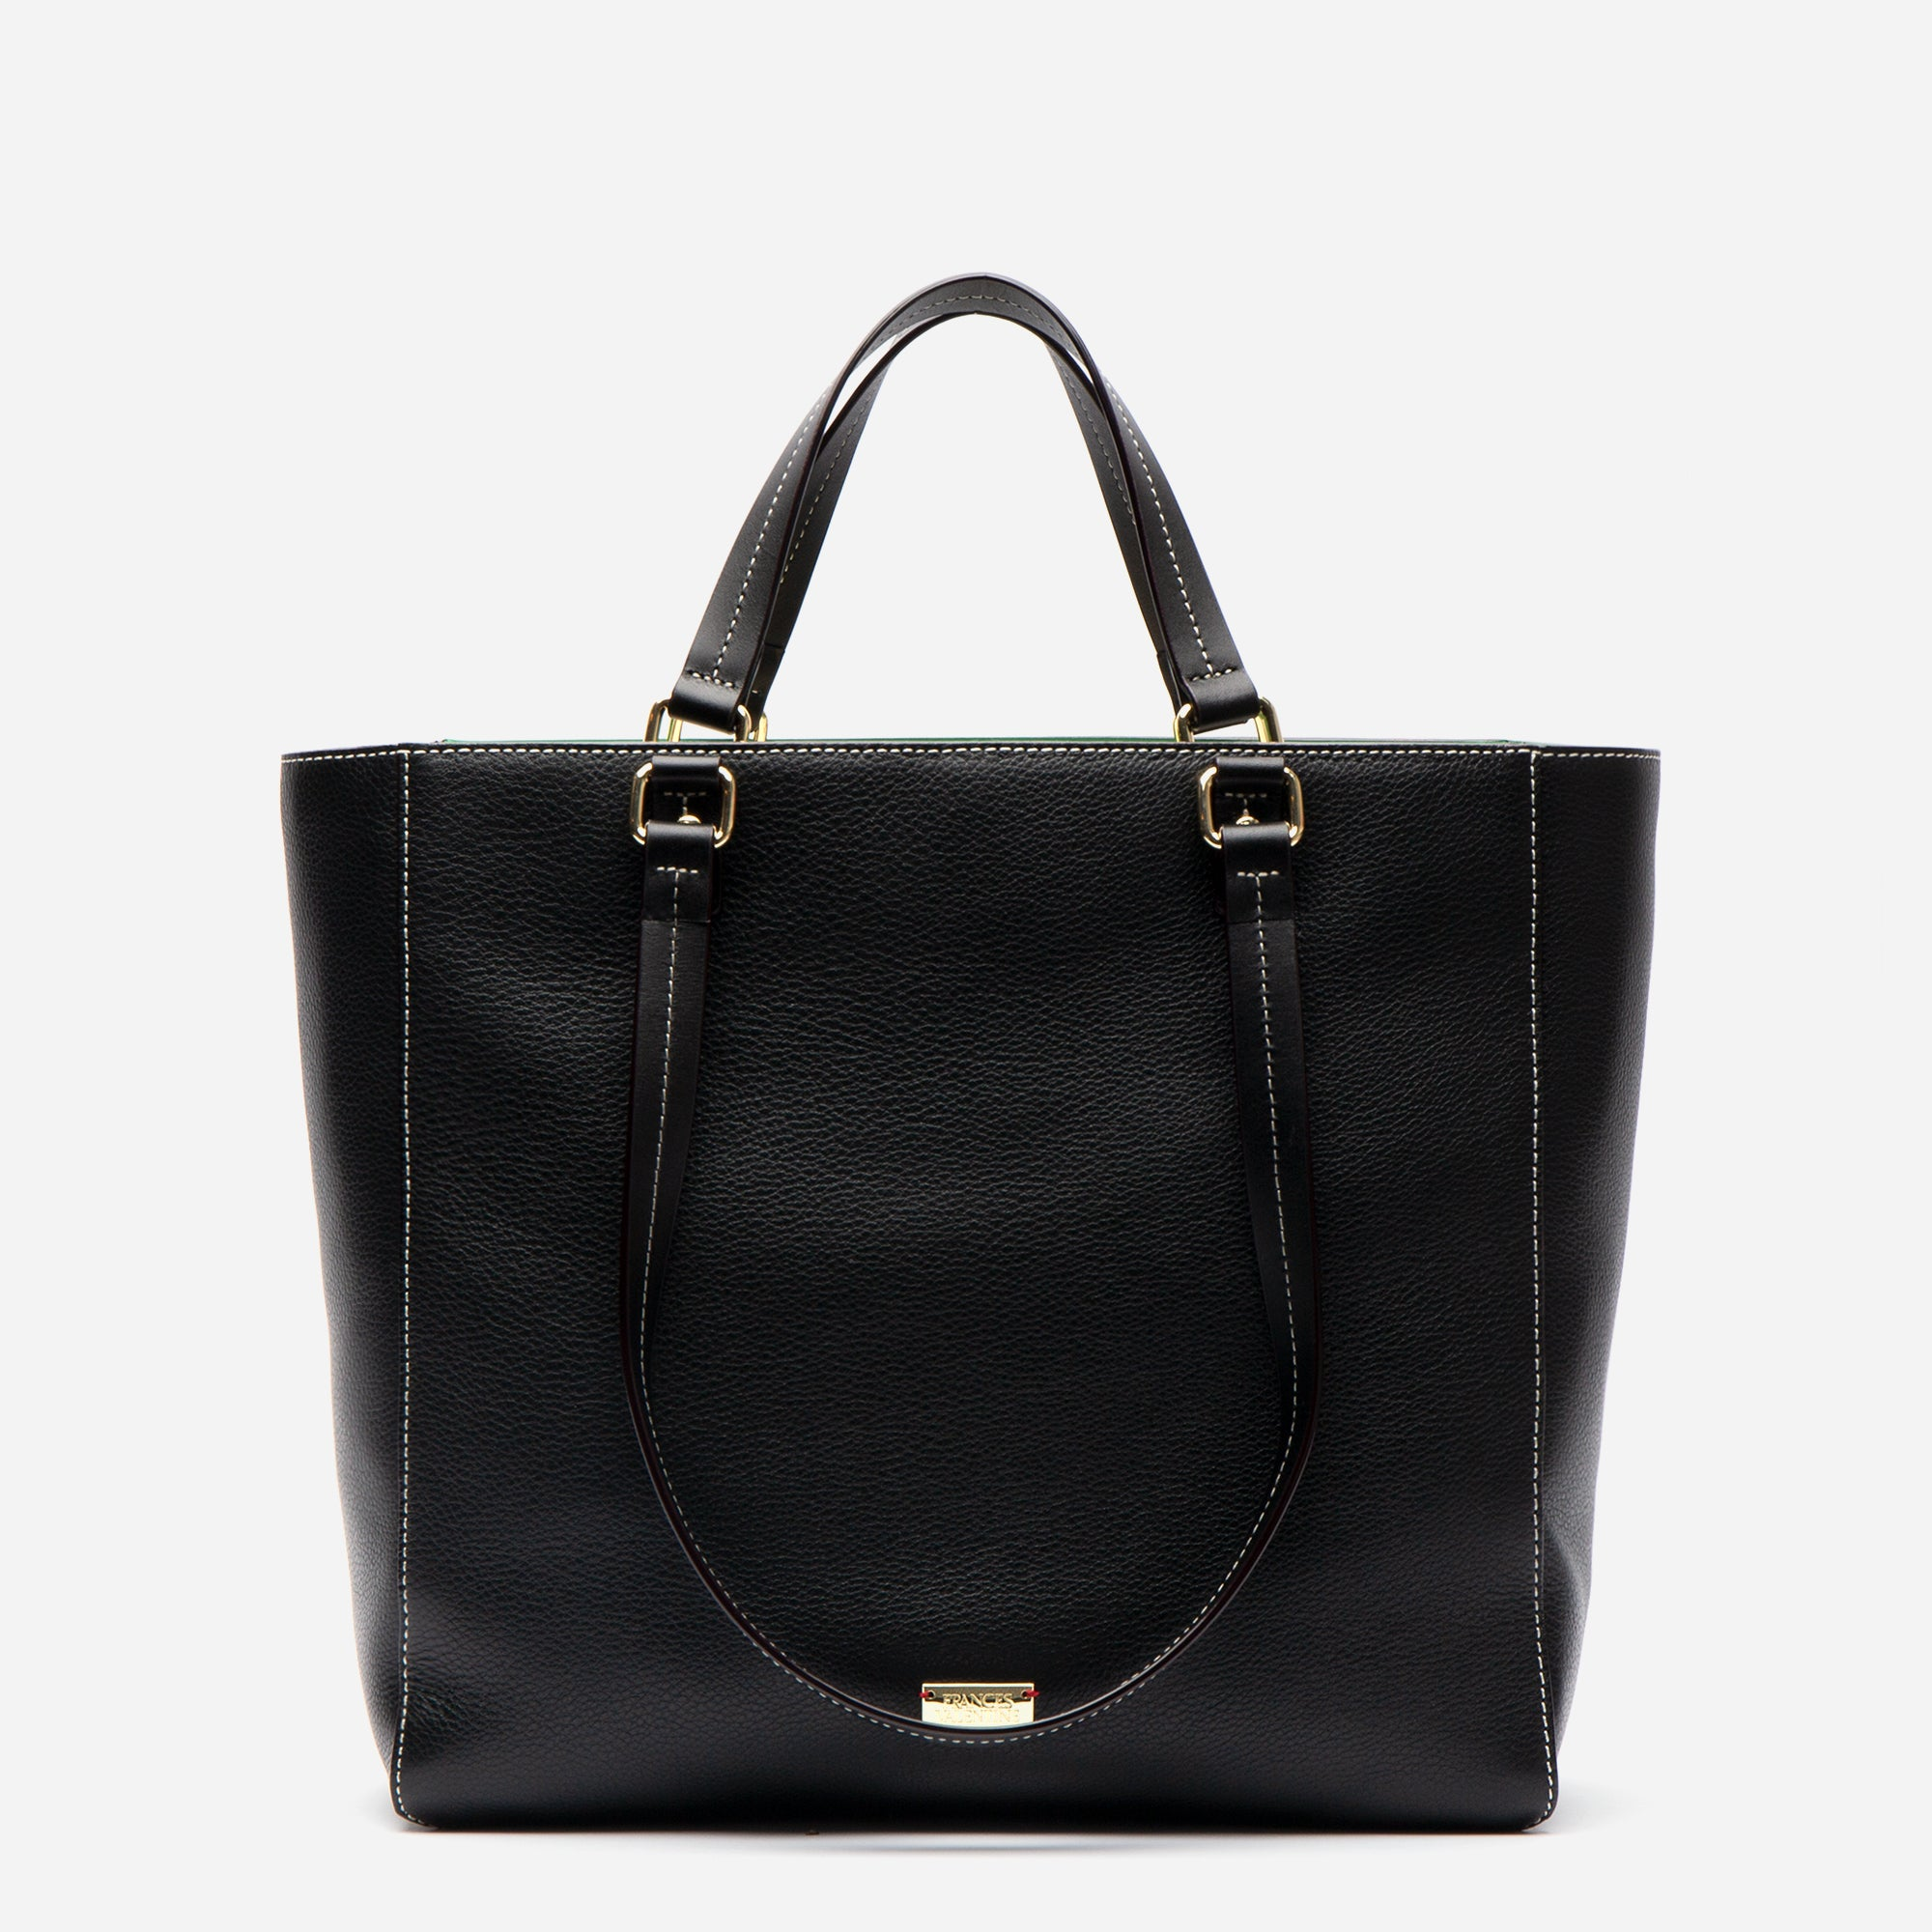 Margie Tote Tumbled Leather Black - Frances Valentine